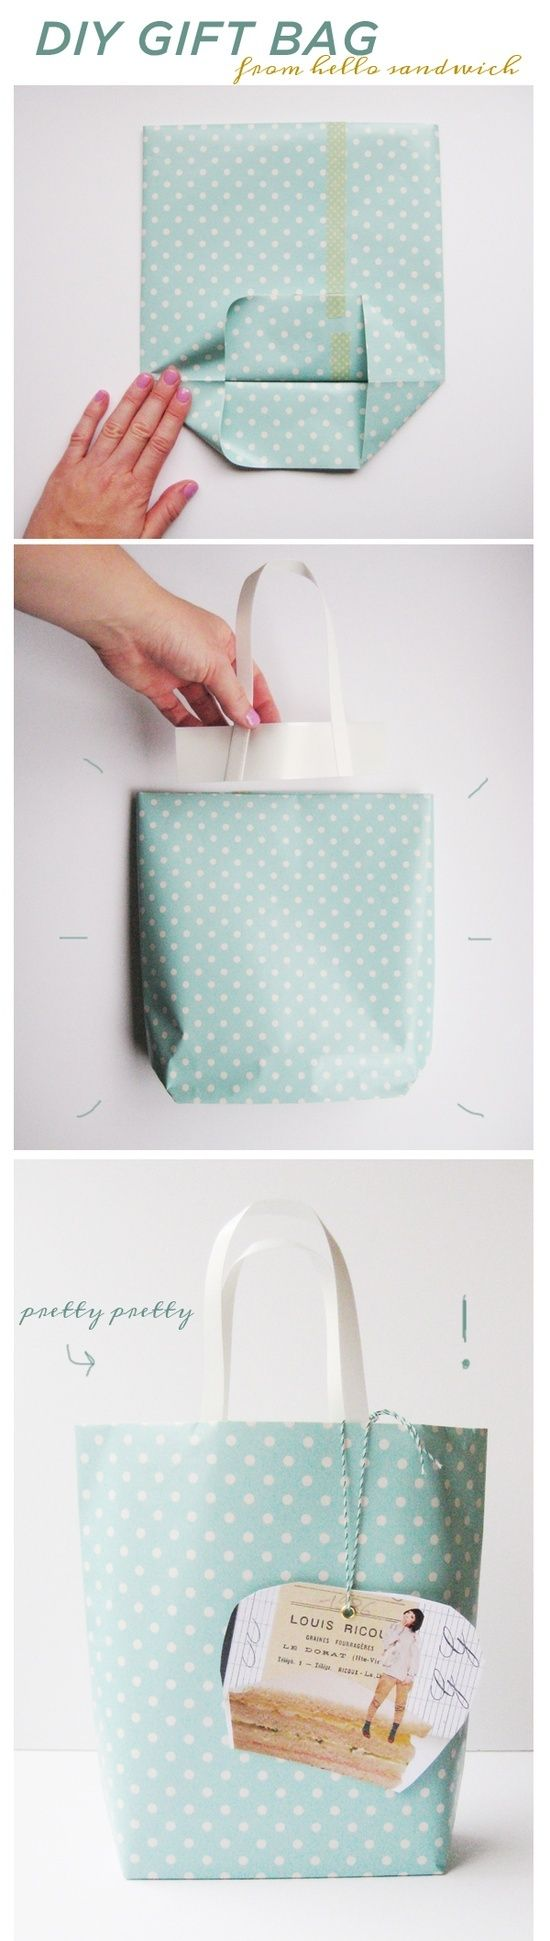 homemade bags/boxes out of wrapping paper/ scrapbook paper.